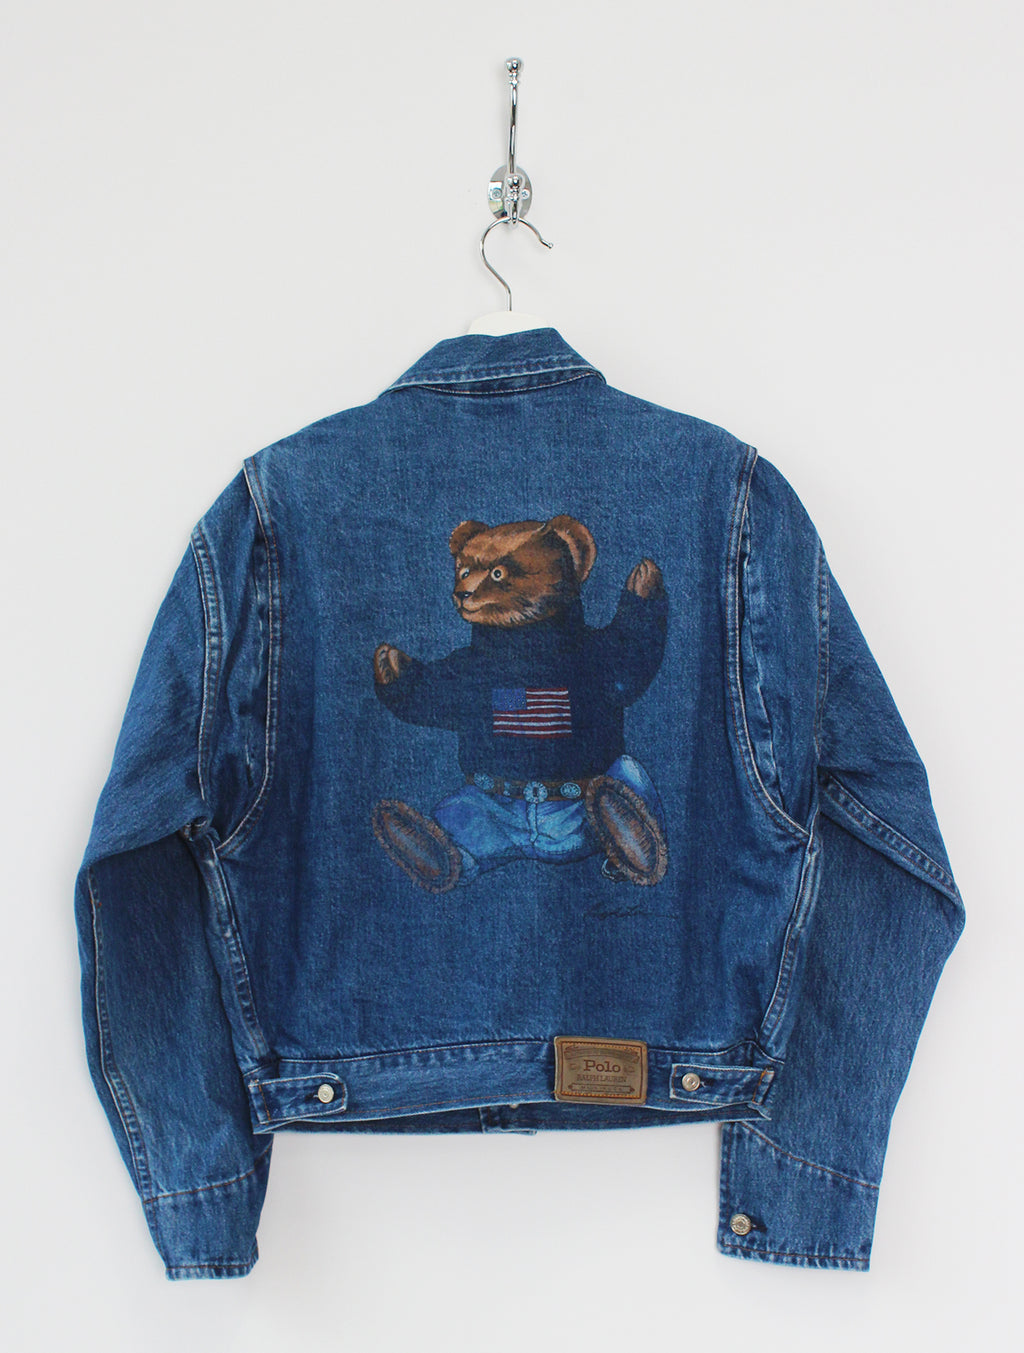 1992 Women's Ralph Lauren Denim Jacket (S)